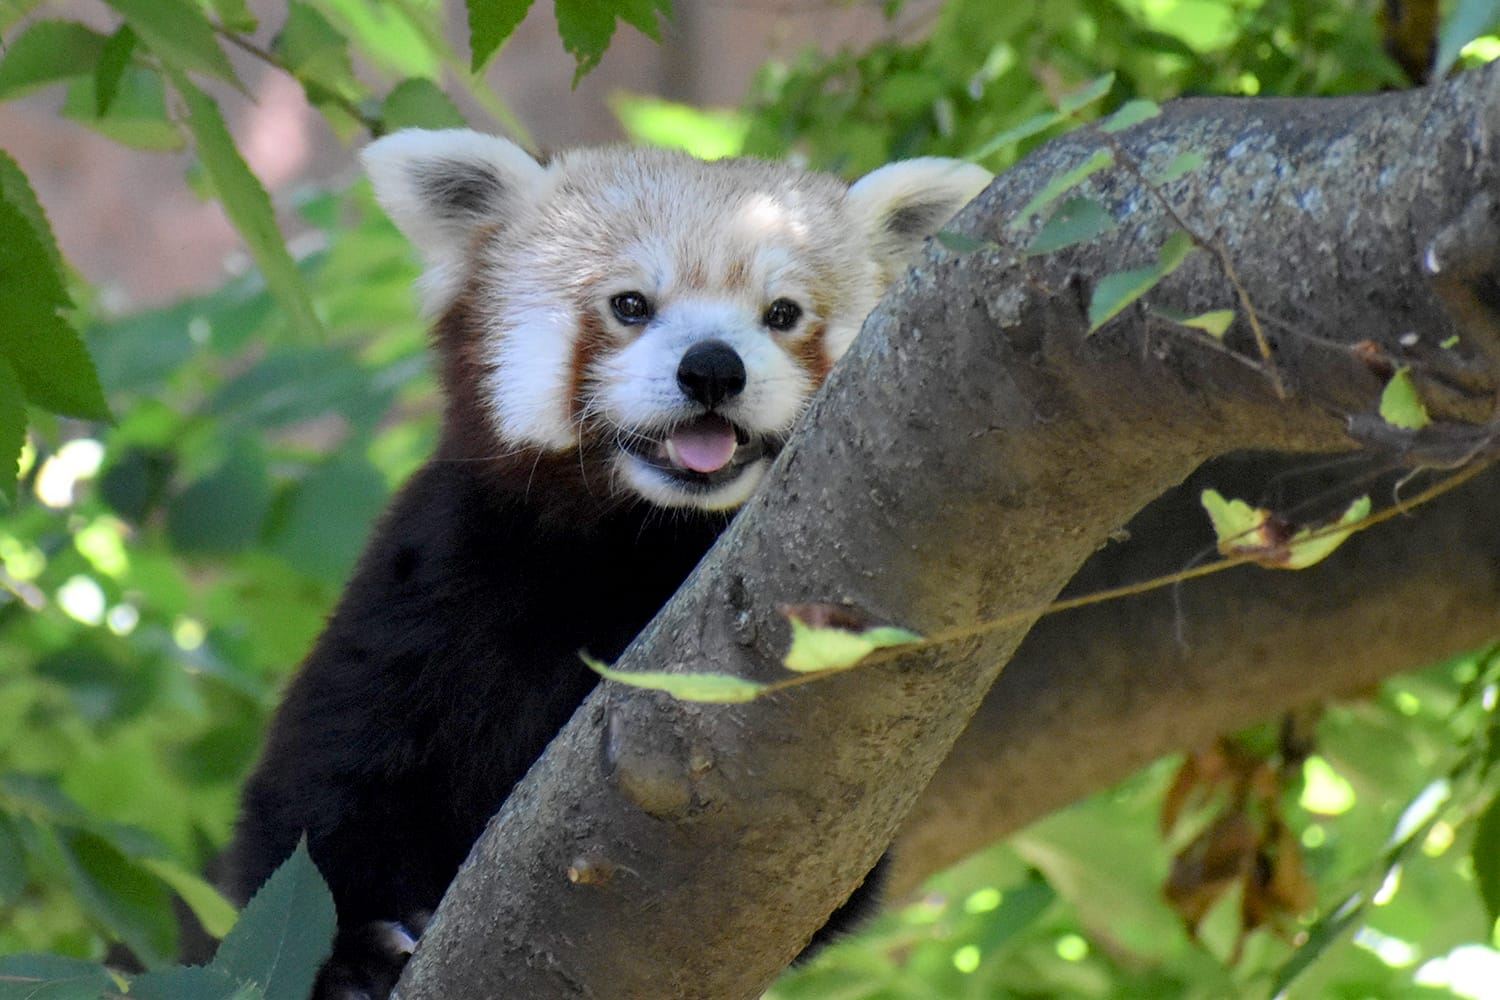 Smiling Red Panda in the Indianapolis Zoo, Indiana, USA